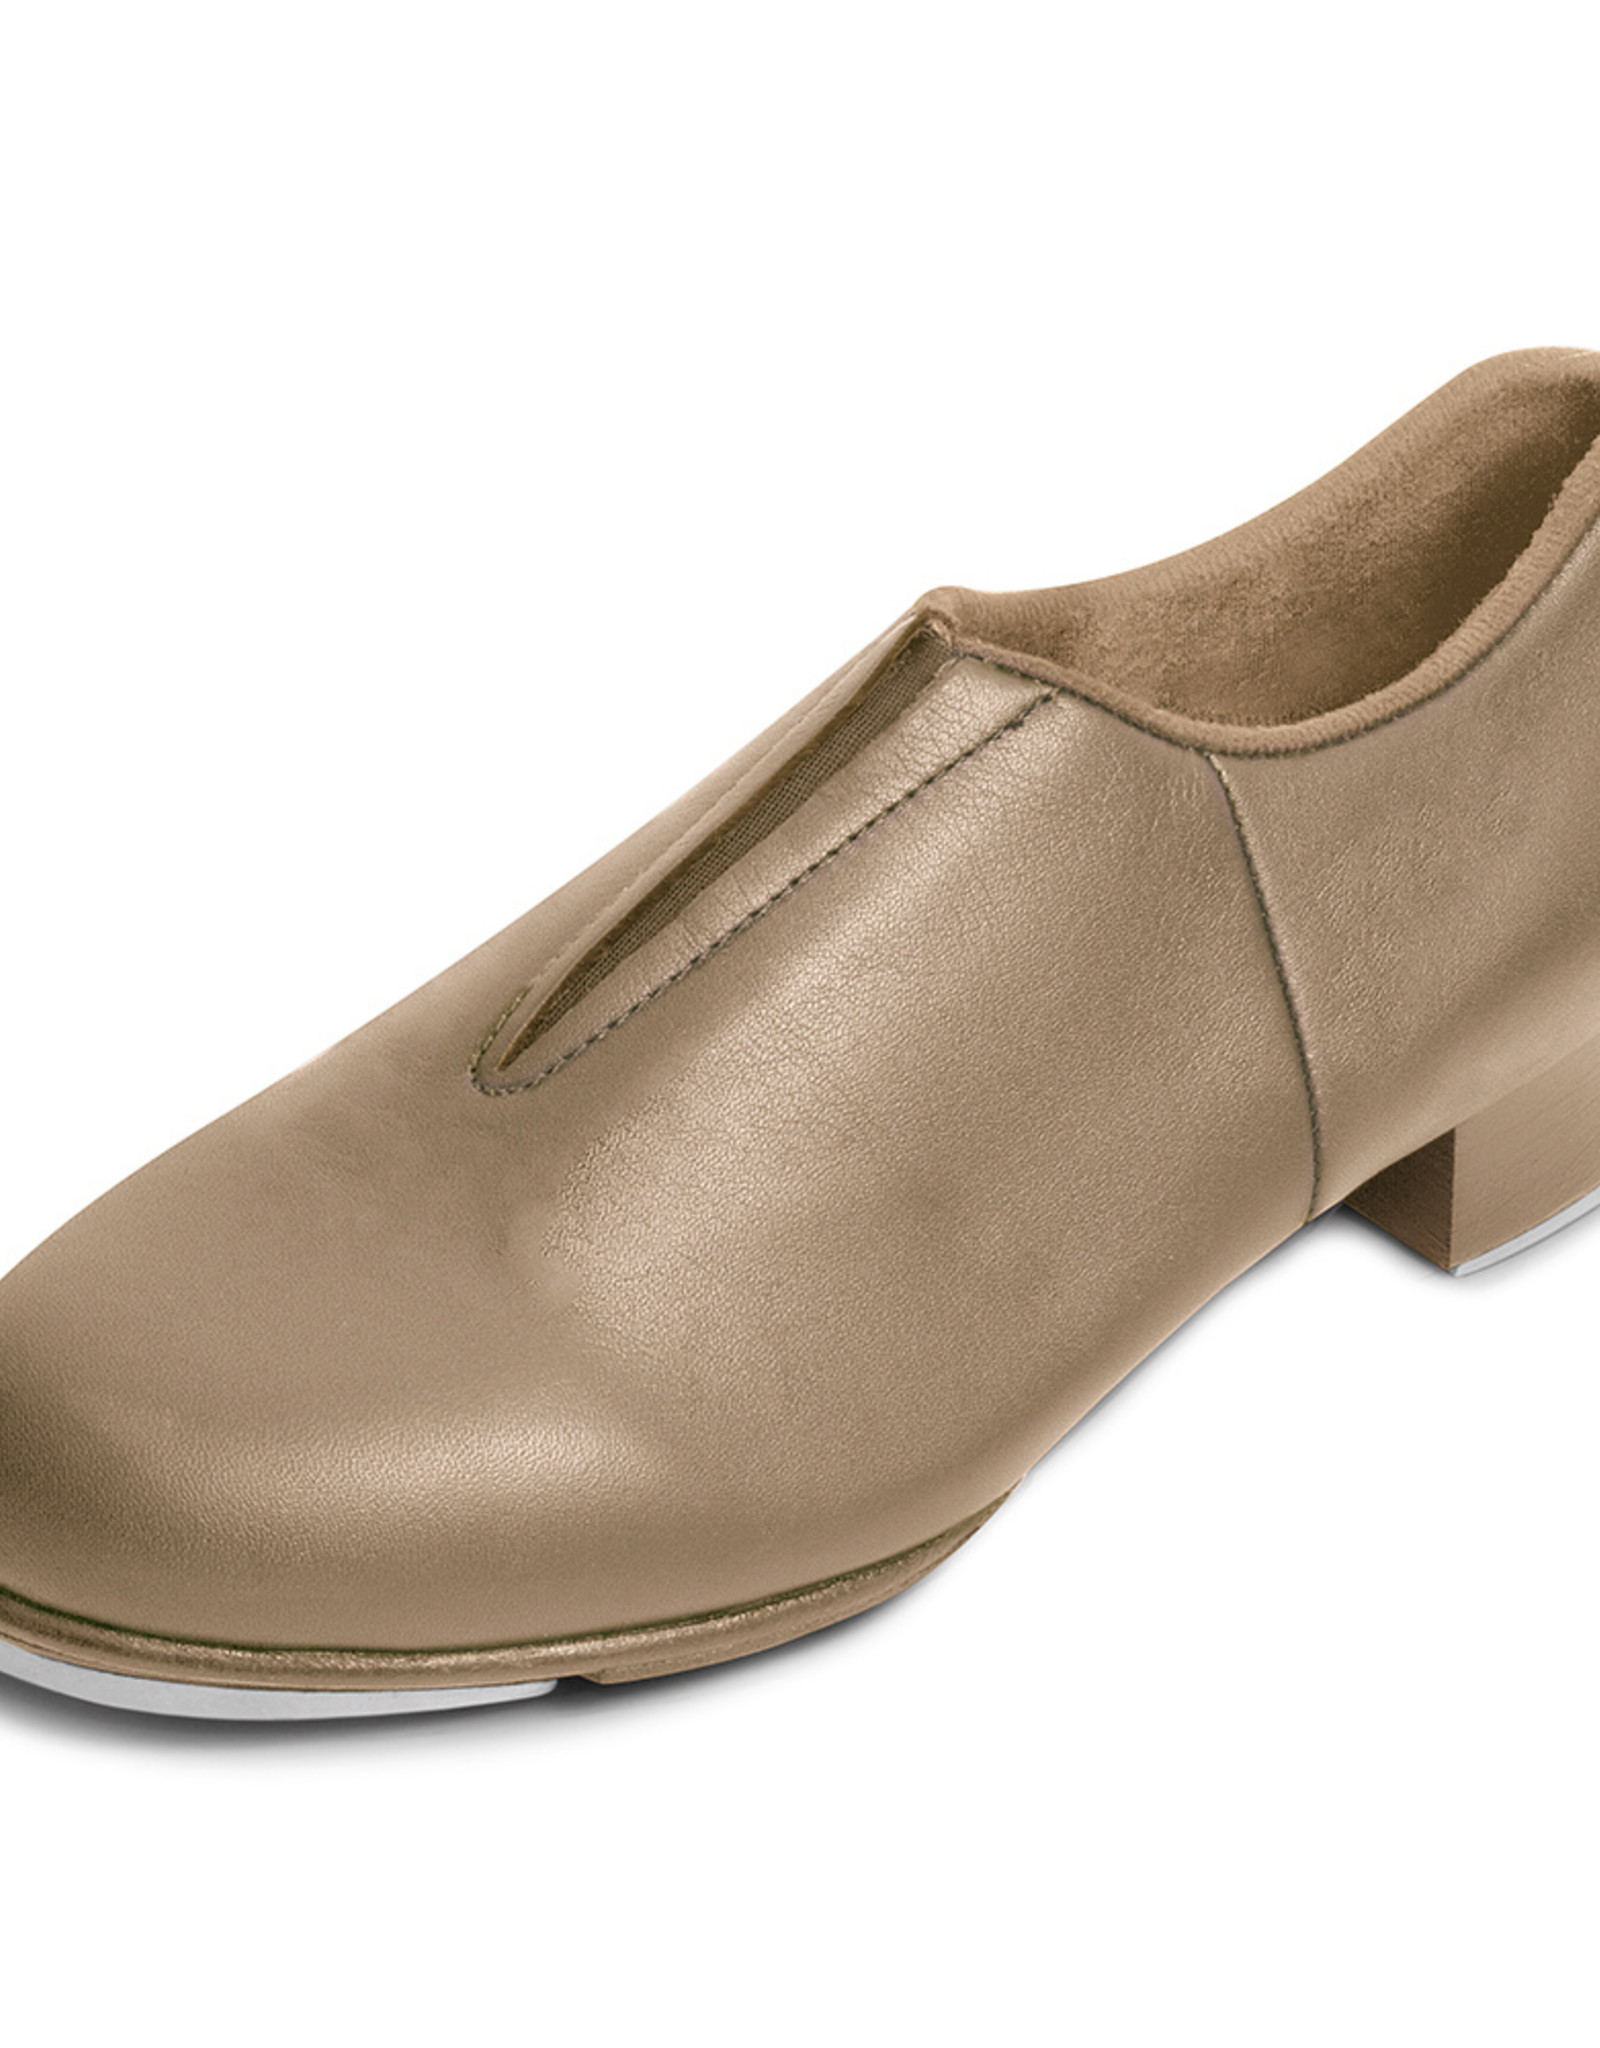 Bloch Bloch Tap Flex Slip-On - S0389L